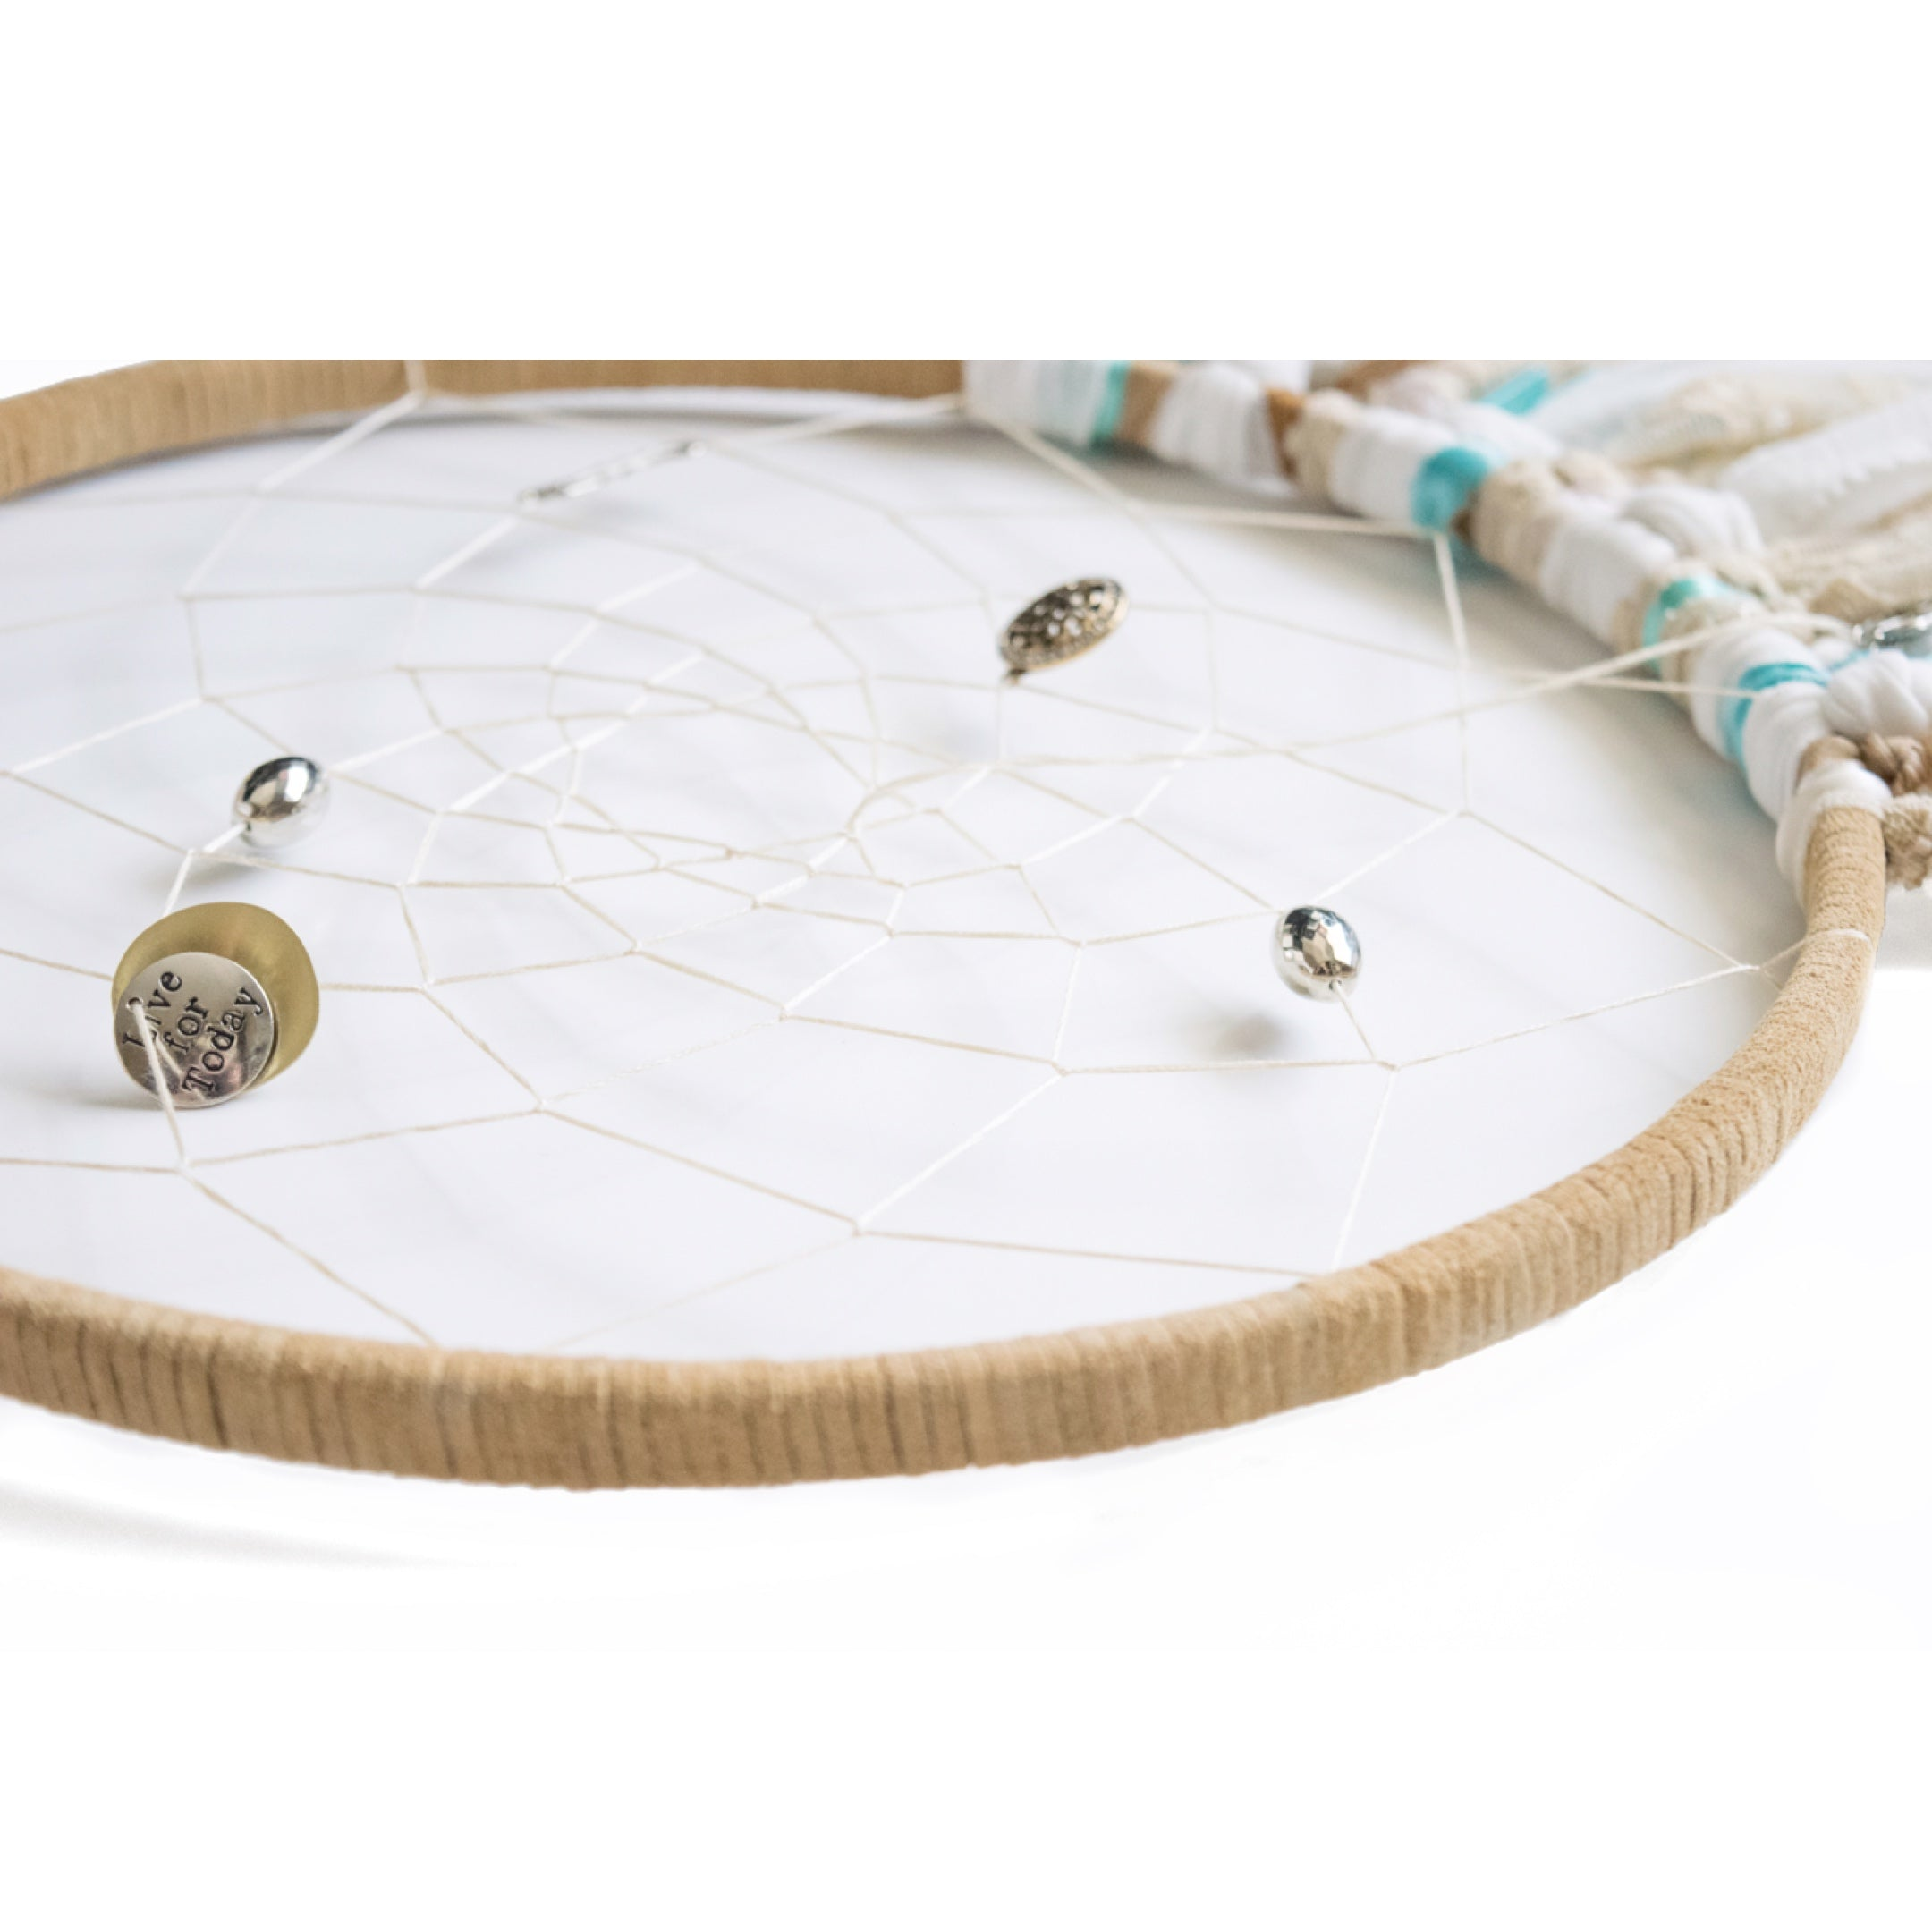 Dreamcatcher Dream Catcher Extra Large Huge Ginormous Big Mega Earthy Boho Chic Hippie